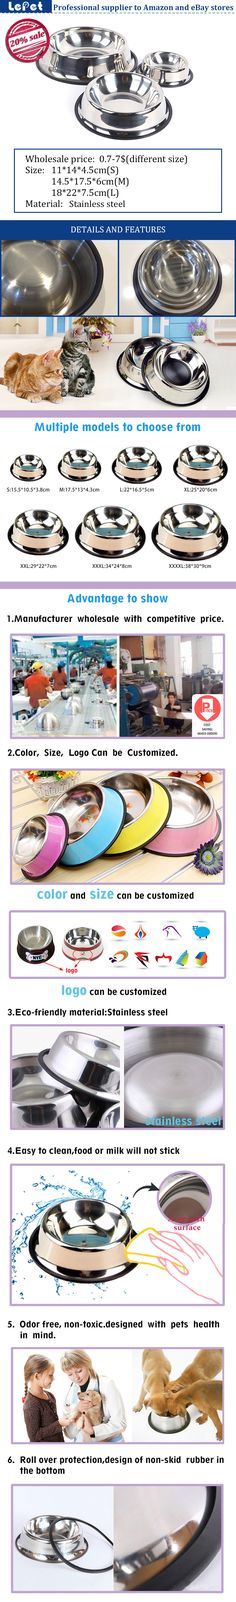 Lepetco is a wholesale manufacturer of non-slip stainless steel and melamine slow feed dog bowl with reasonable price for 7 years. We are looking for worldwide partner and wholesalers Any interest and more details,please check: www.lepetco.com Best Regards Lepet Family Mail:sales01@lepetco.com Tel: 86-022-28424860 Elevated Dog Bed, Elevated Dog Bowls, Cat Litter Mat, Litter Box, Chain Link Dog Kennel, Raised Dog Beds, Pet Cooling Mat, Hammock Cover, Stainless Steel Dog Bowls